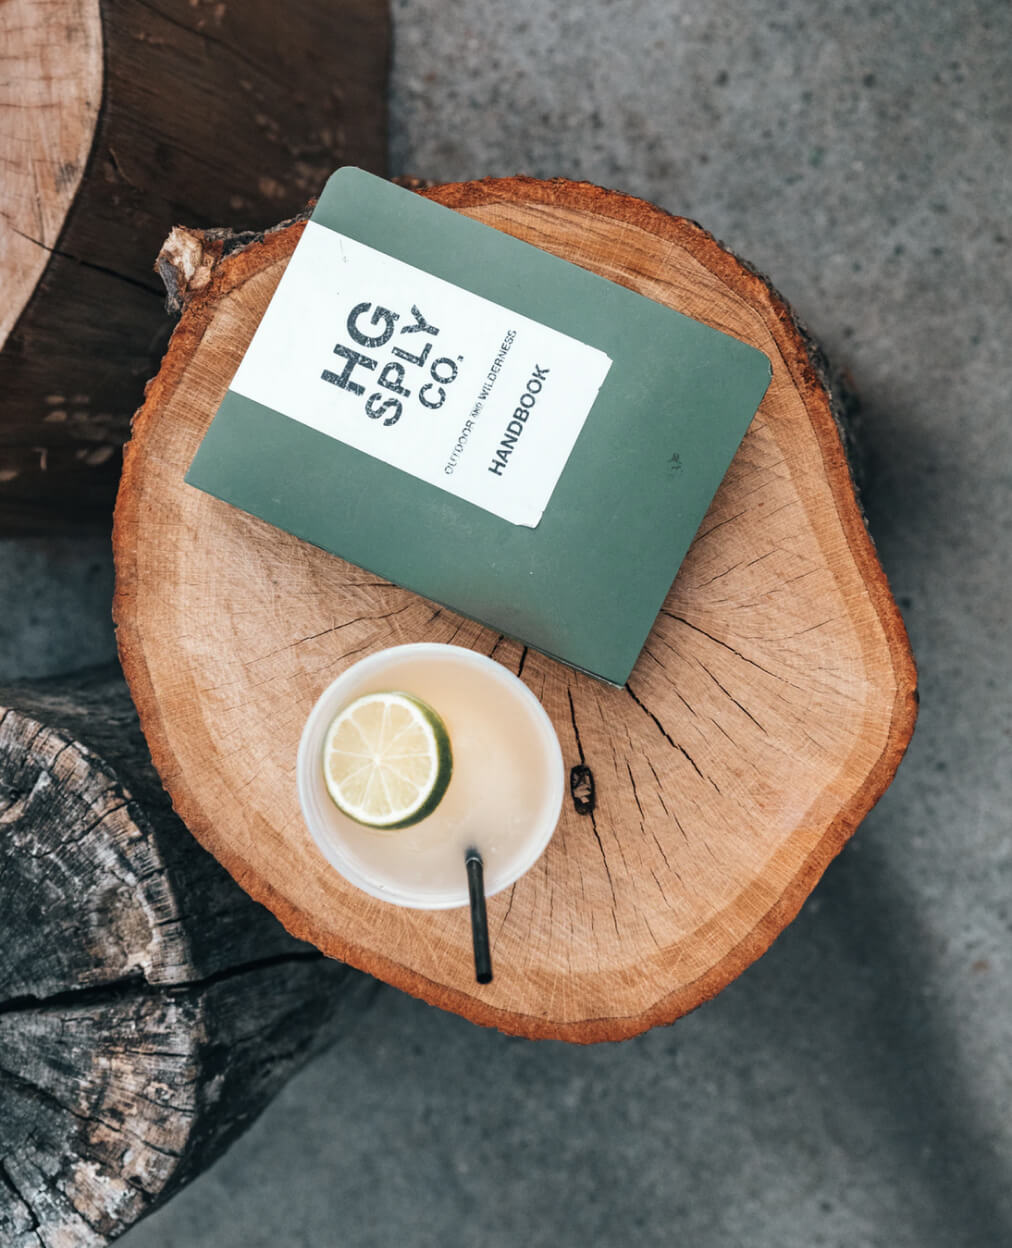 Birds eye view of a book and coffee on a side table.